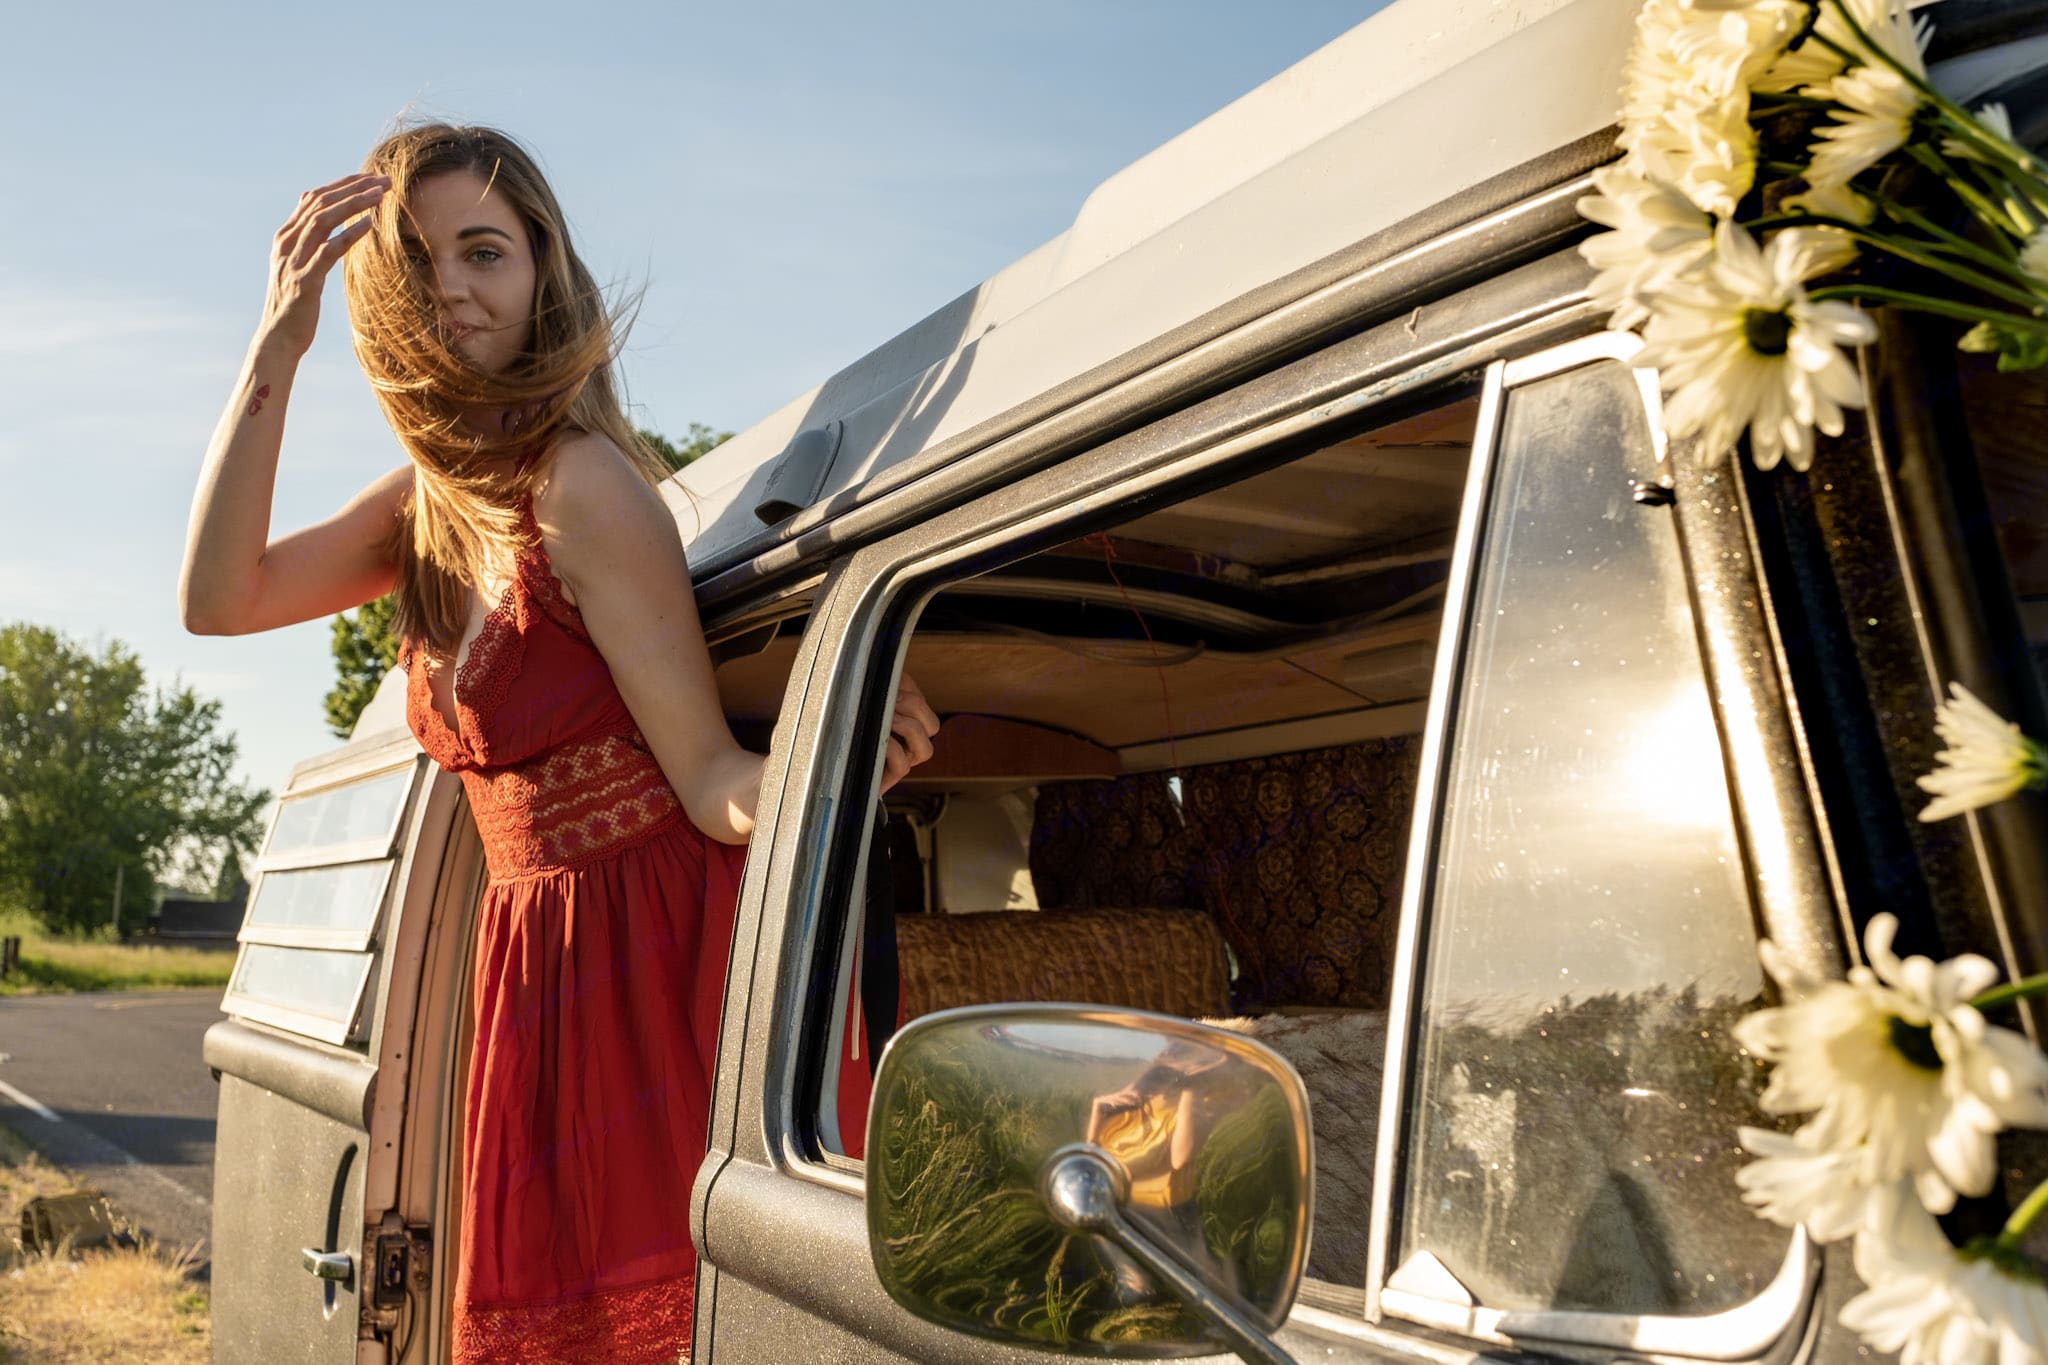 Smiling VW Bus Guest is pictured here on Sauvie Island. It is located just north of Portland. Book a VW Bus in Portland today to enjoy Sauvie Island. Volkswagen Westfalia 1971